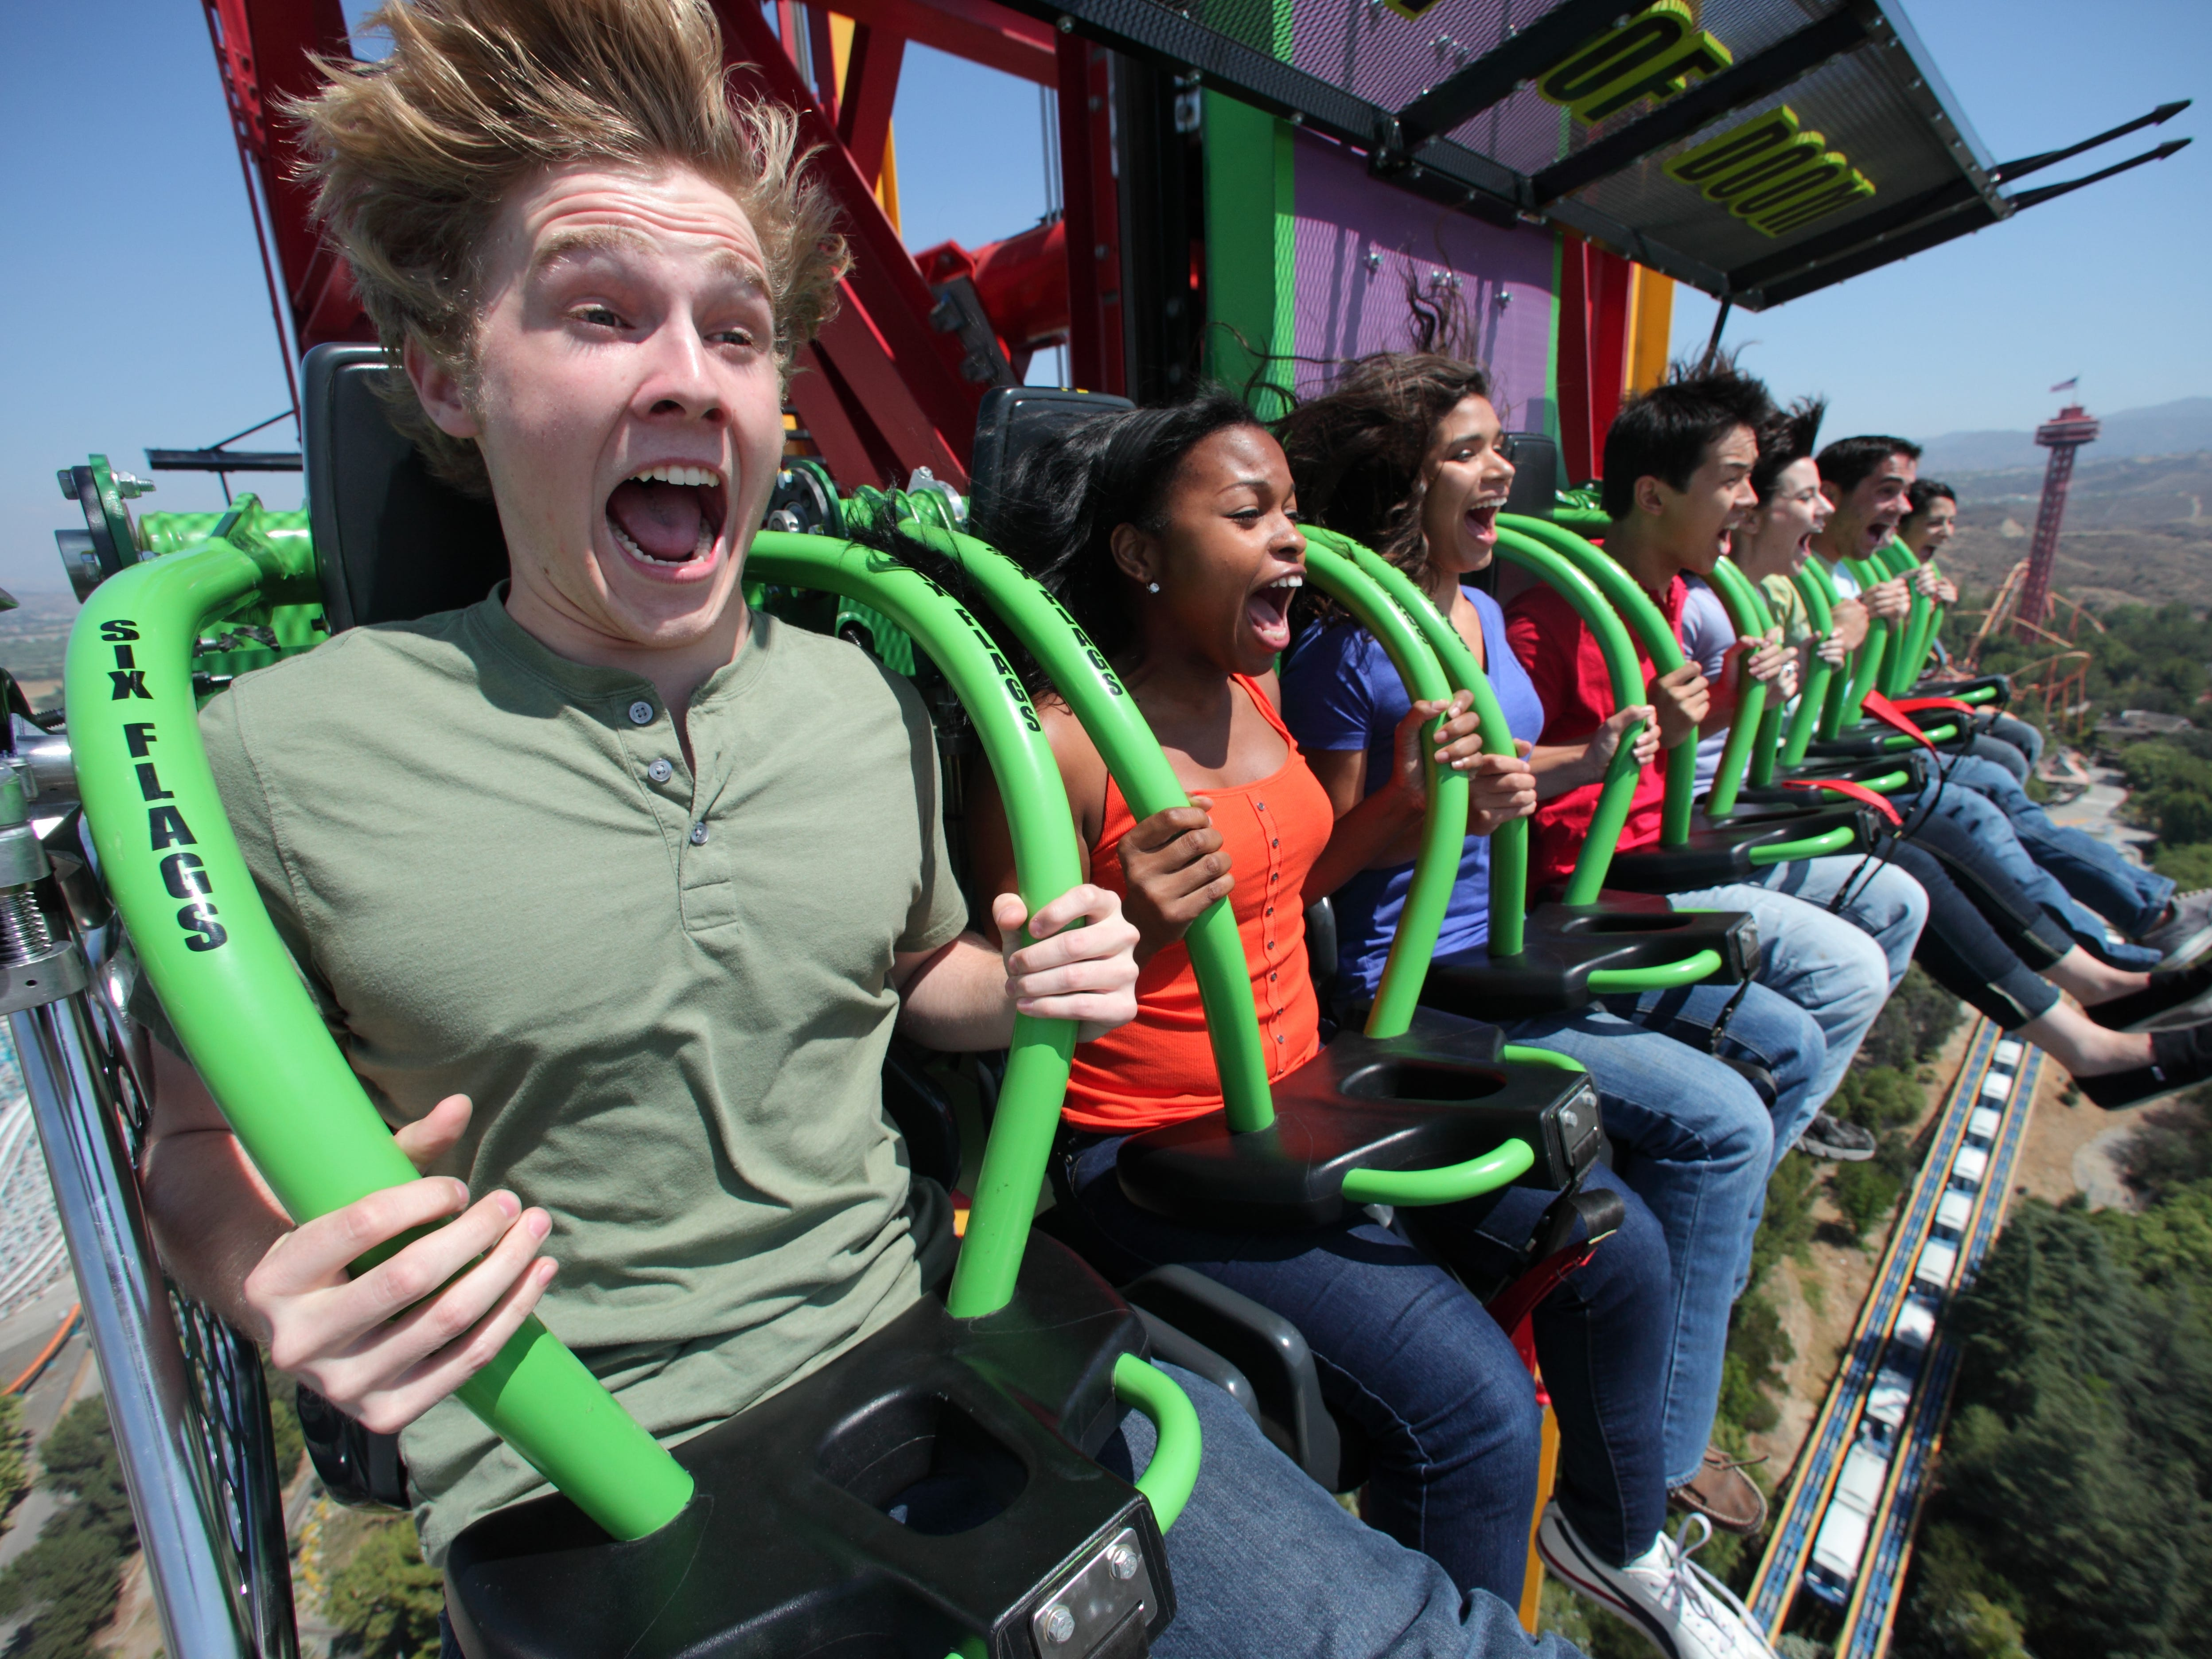 The first drop tower in the world to crack the 400-foot mark is on the same tower as a record-breaking coaster, Superman: Escape from Krypton at Six Flags Magic Mountain in Valencia, California.